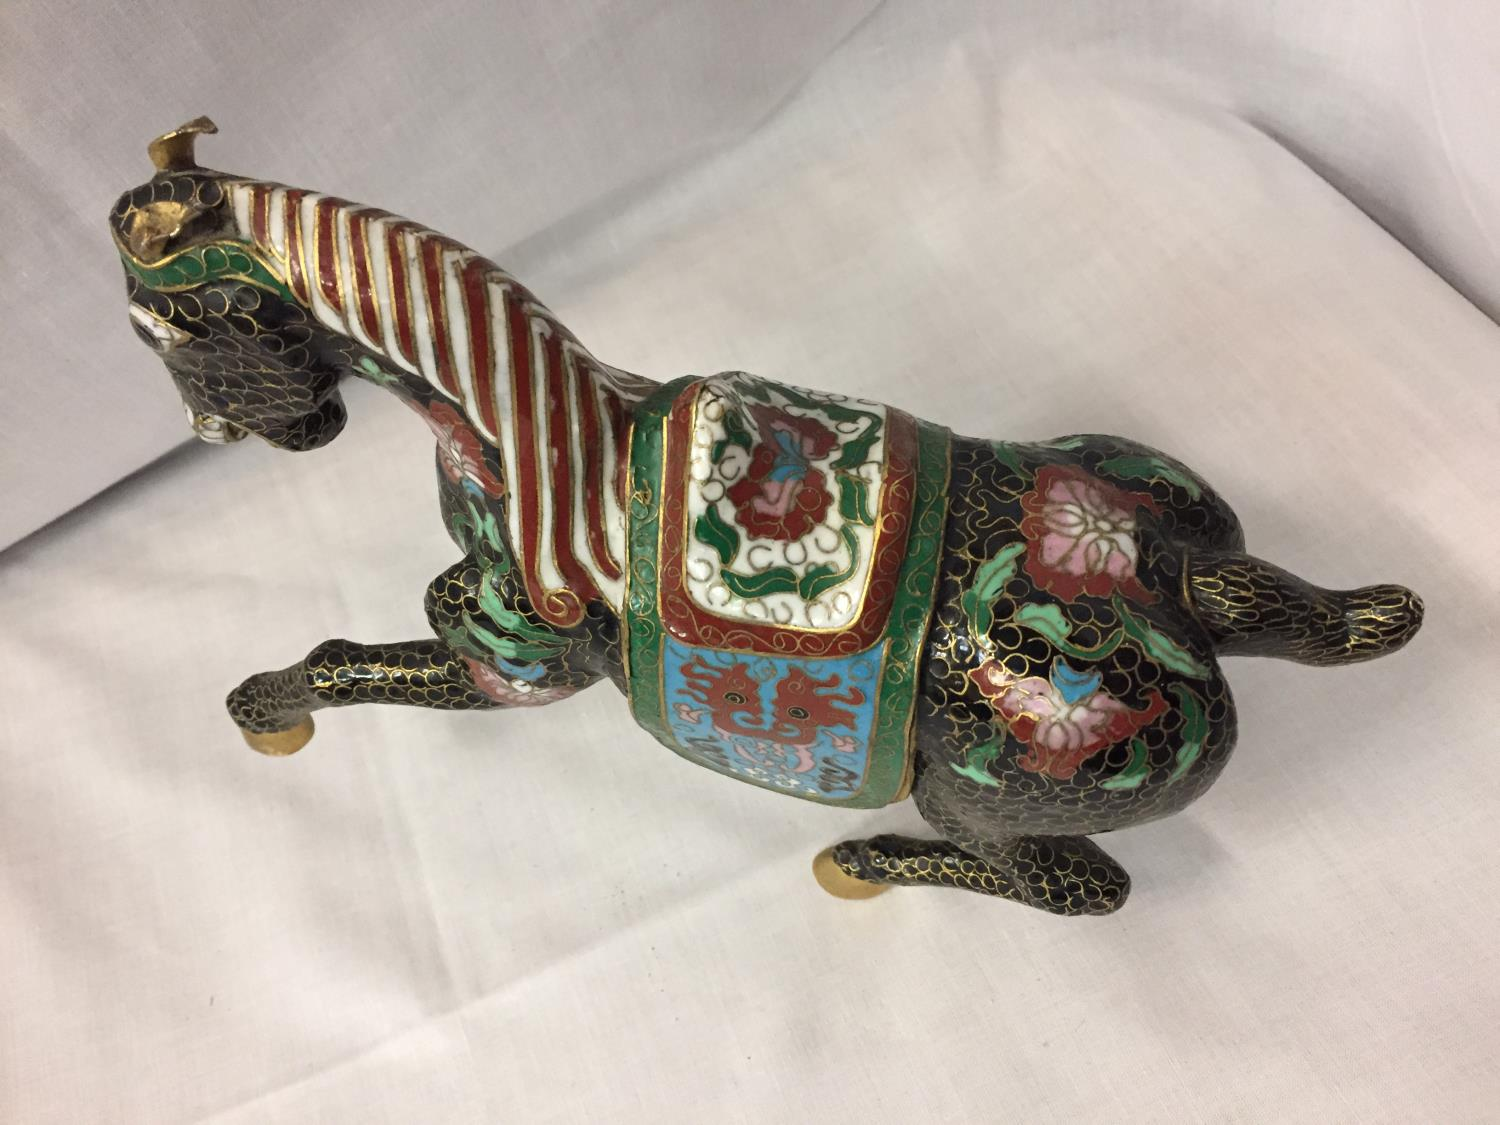 A CHINESE BRONZE CLOISONNE ENAMEL AND GILT HORSE - Image 4 of 4